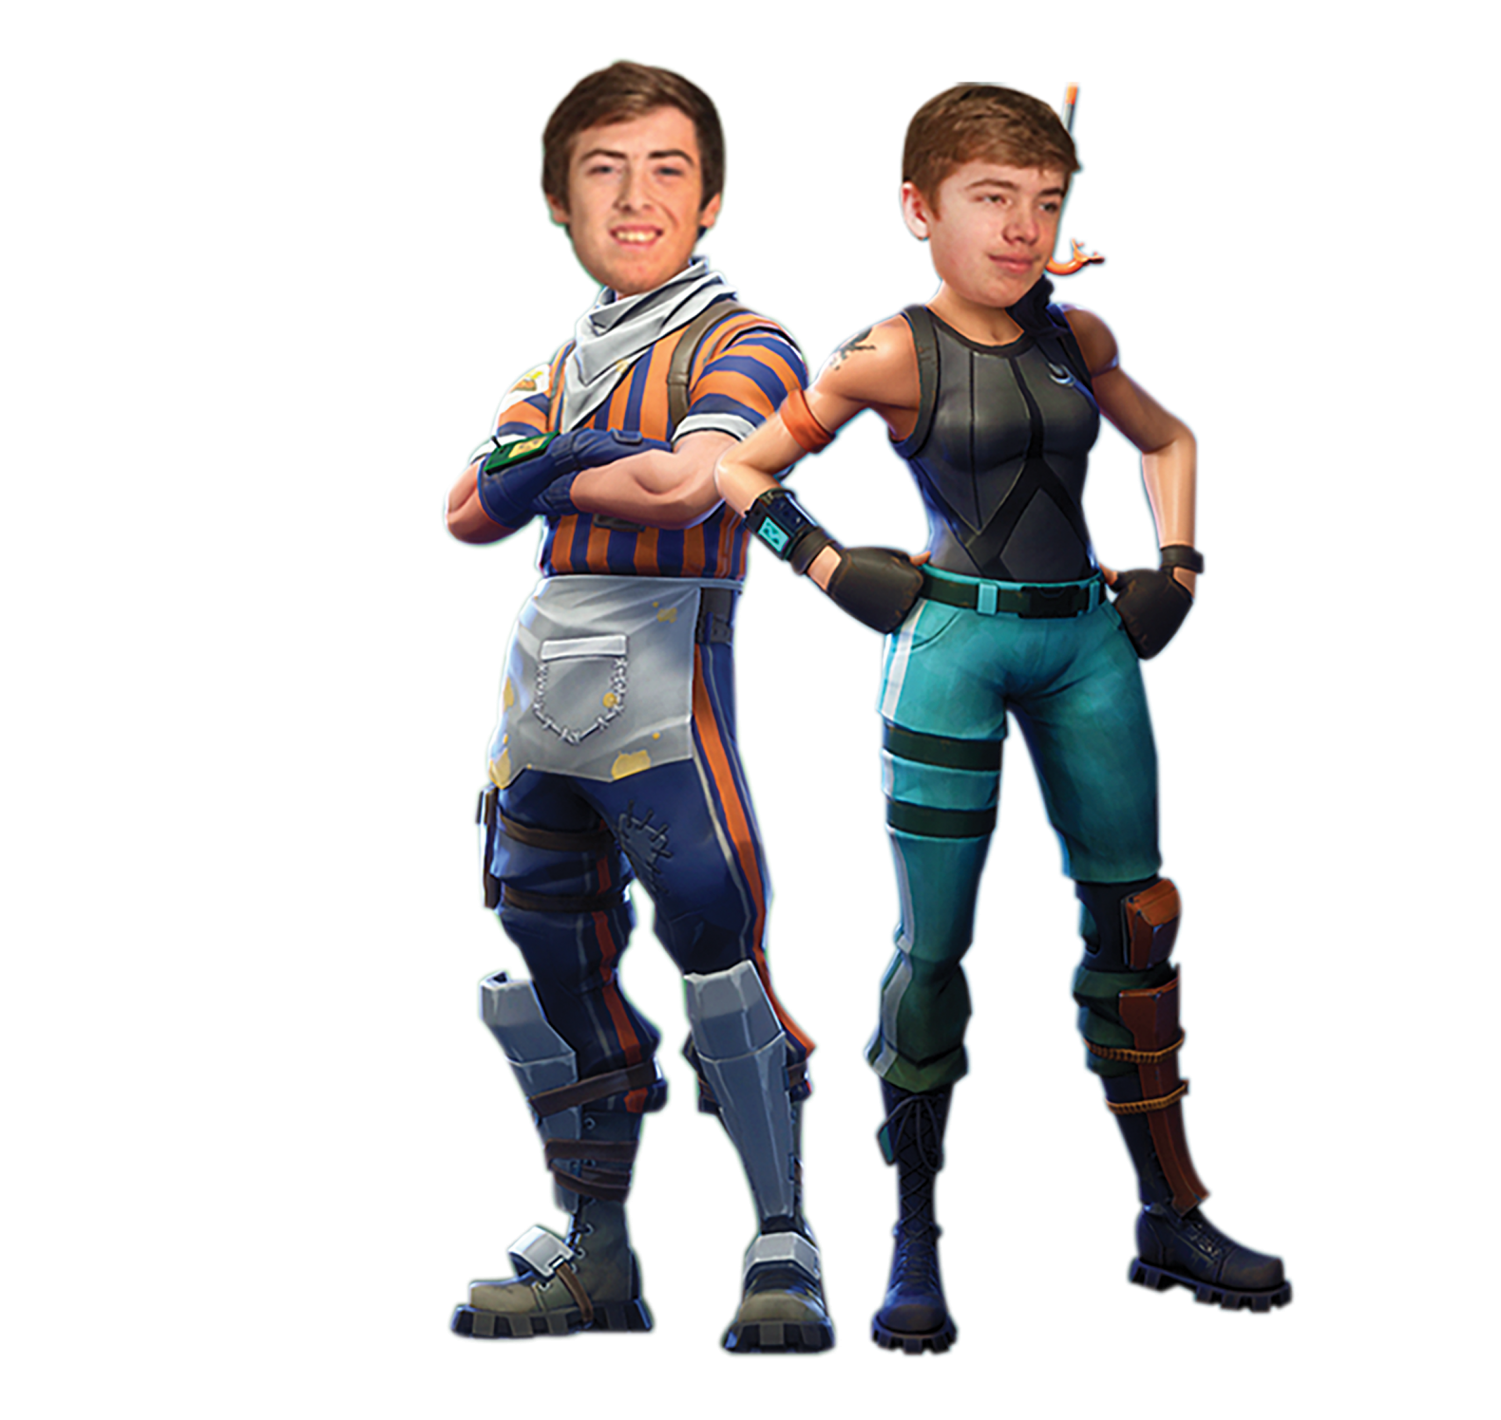 Seniors Nathan Stoddard and Andrew Severn have begun a professional Fortnite team. Here, their images are mixed with some of their favorite characters.